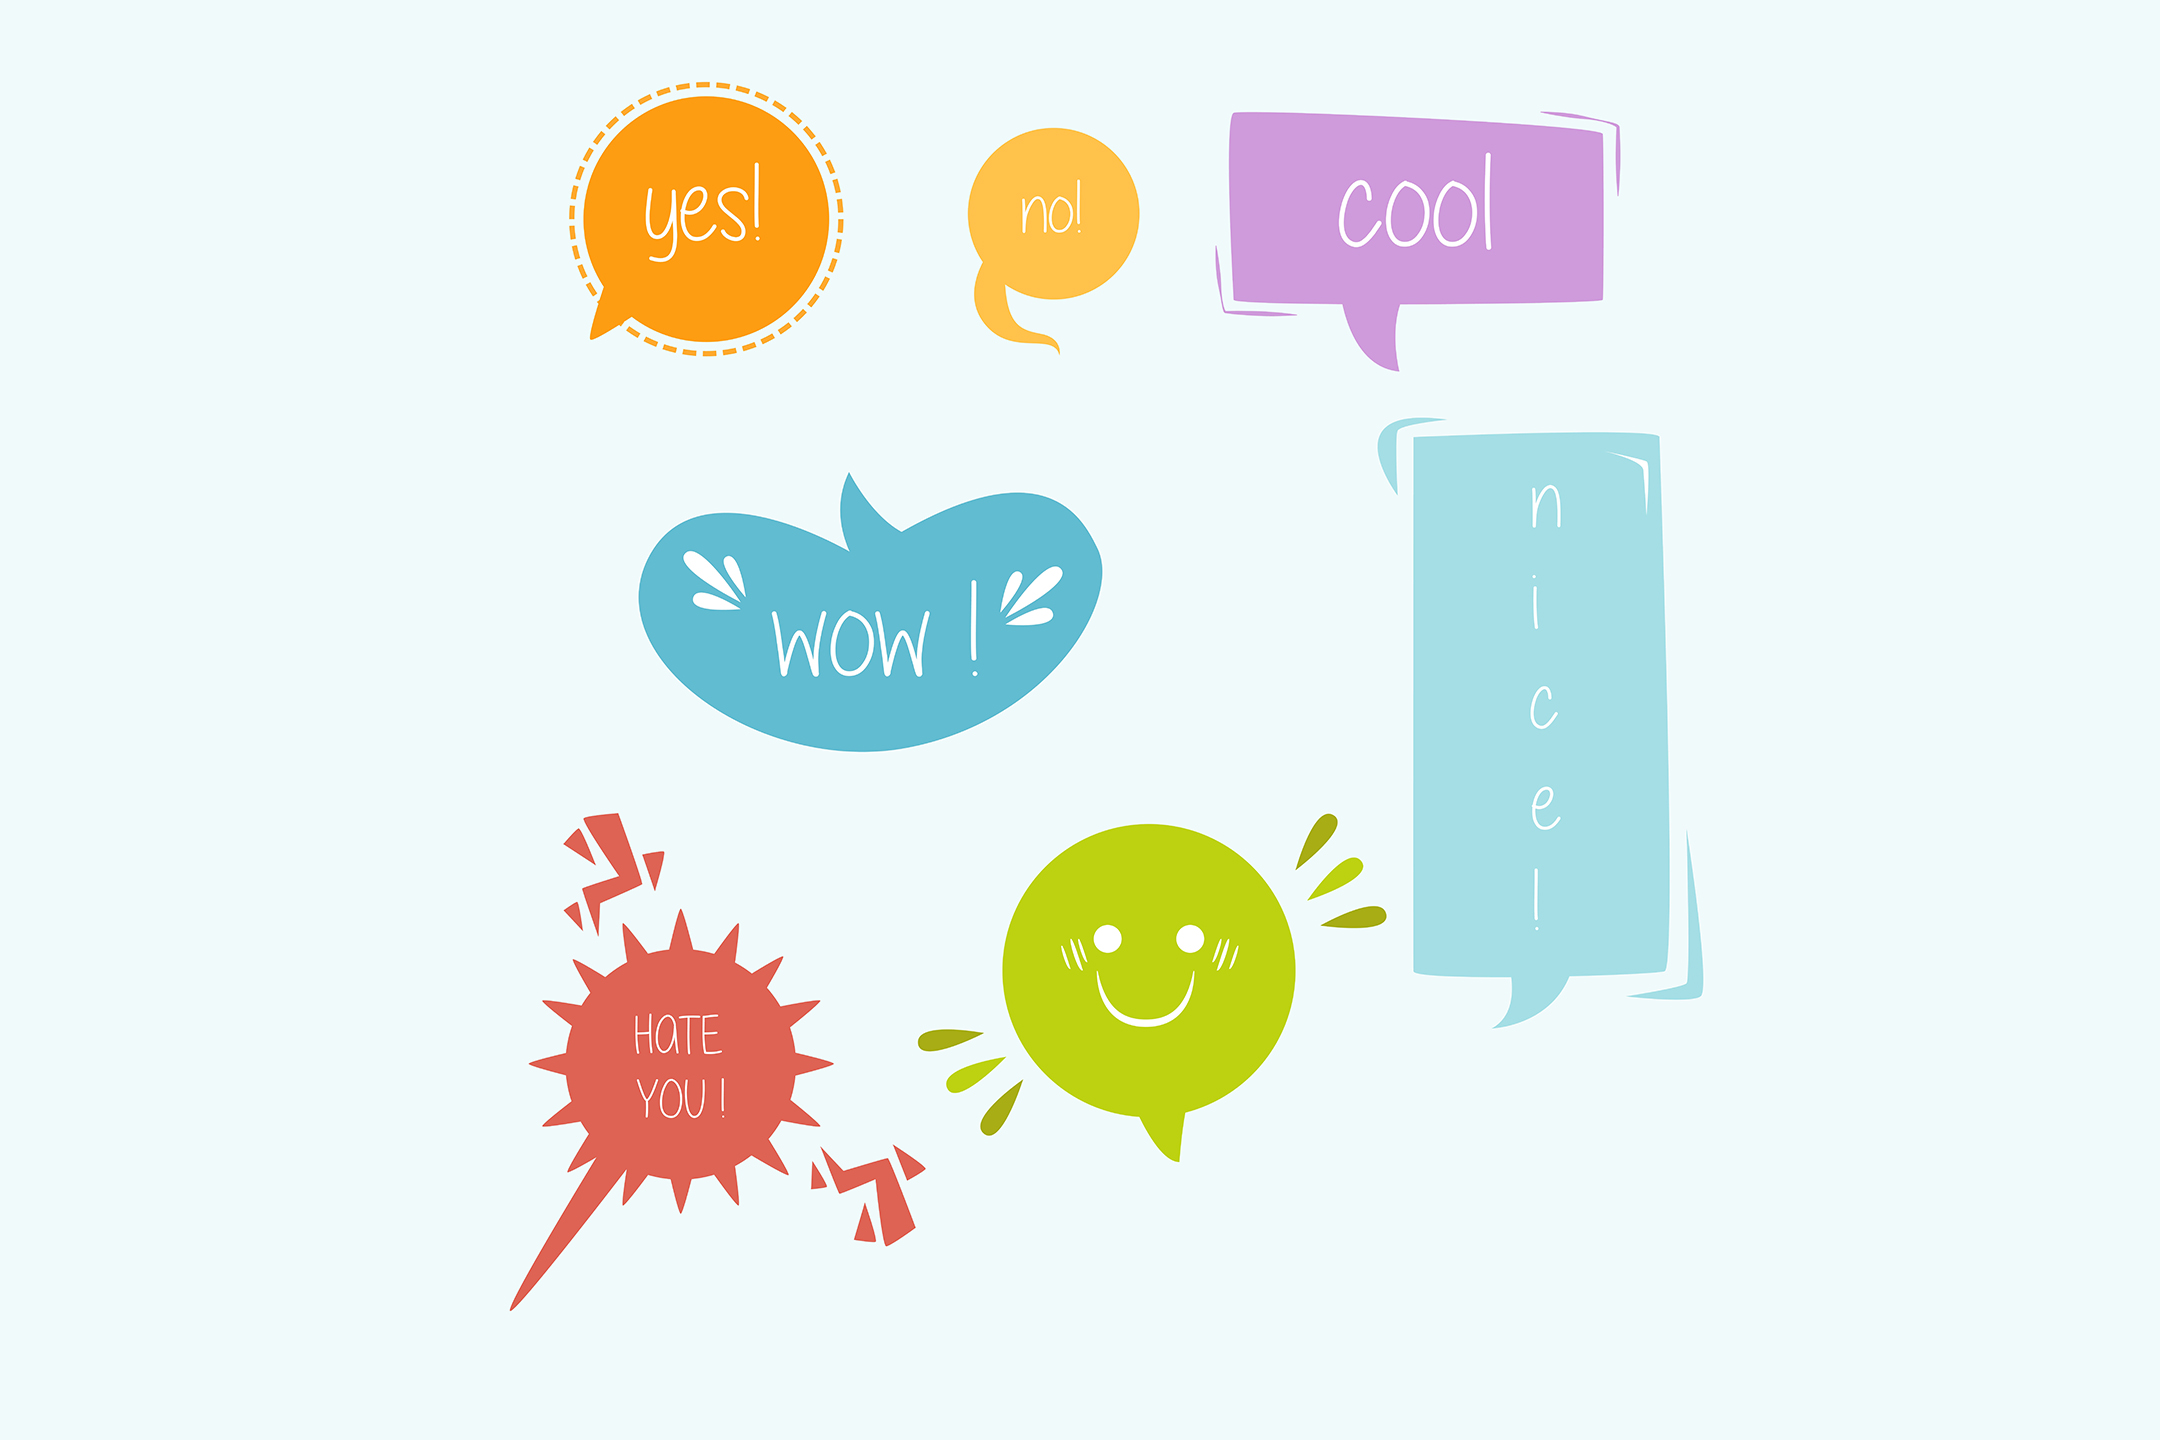 Download Free Colorful Speech Bubble With Words Graphic By Aprlmp276 for Cricut Explore, Silhouette and other cutting machines.